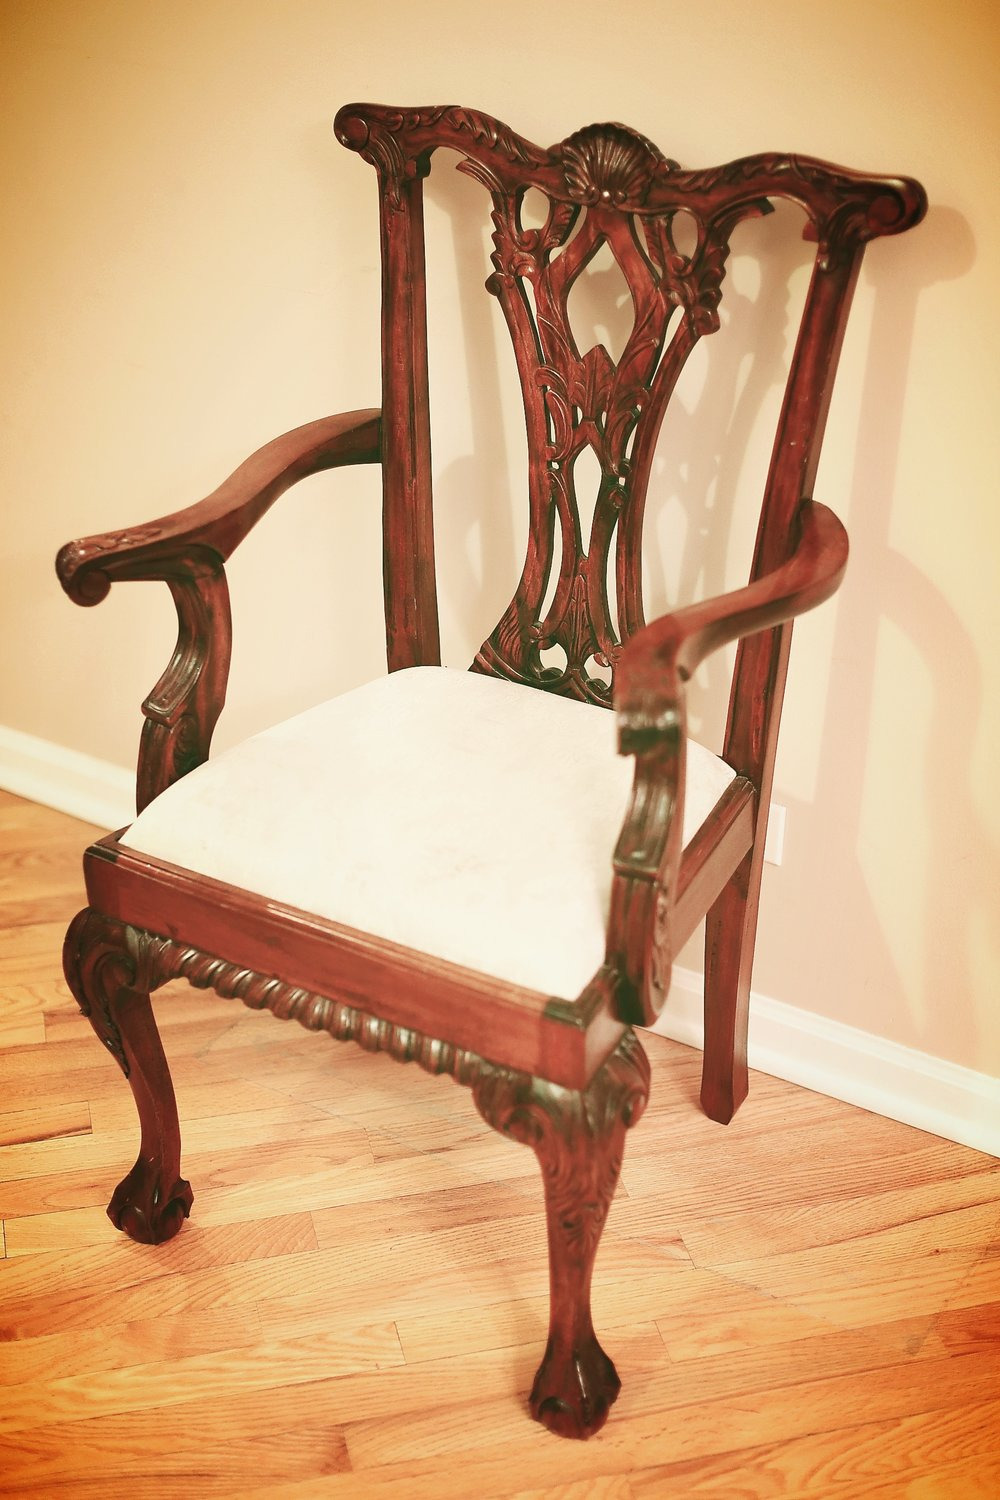 Antique Furniture for Sale On Craigslist New Things to Always Secondhand Never New — the Smart